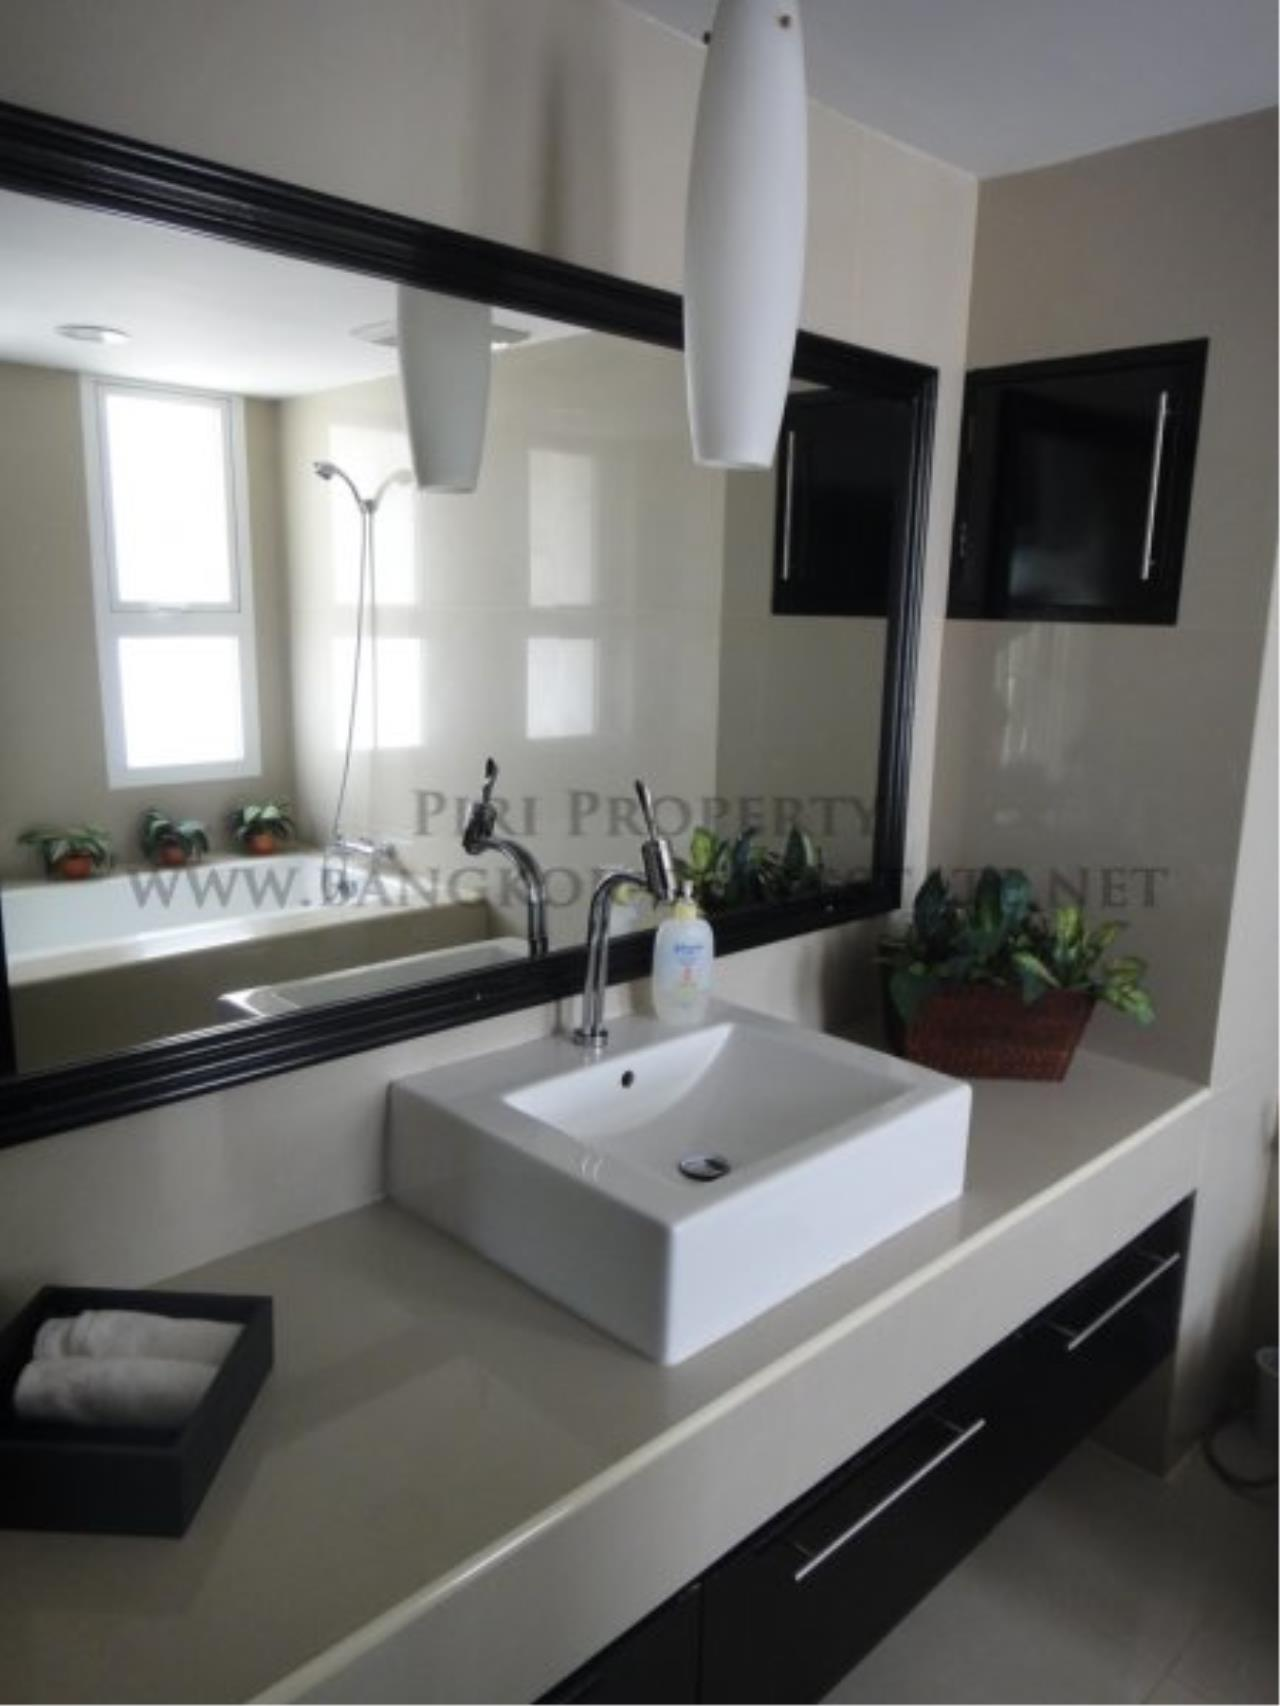 Piri Property Agency's Baan Phrom Phong - 2 Bedroom Condo for Sale - RENOVATED! 12